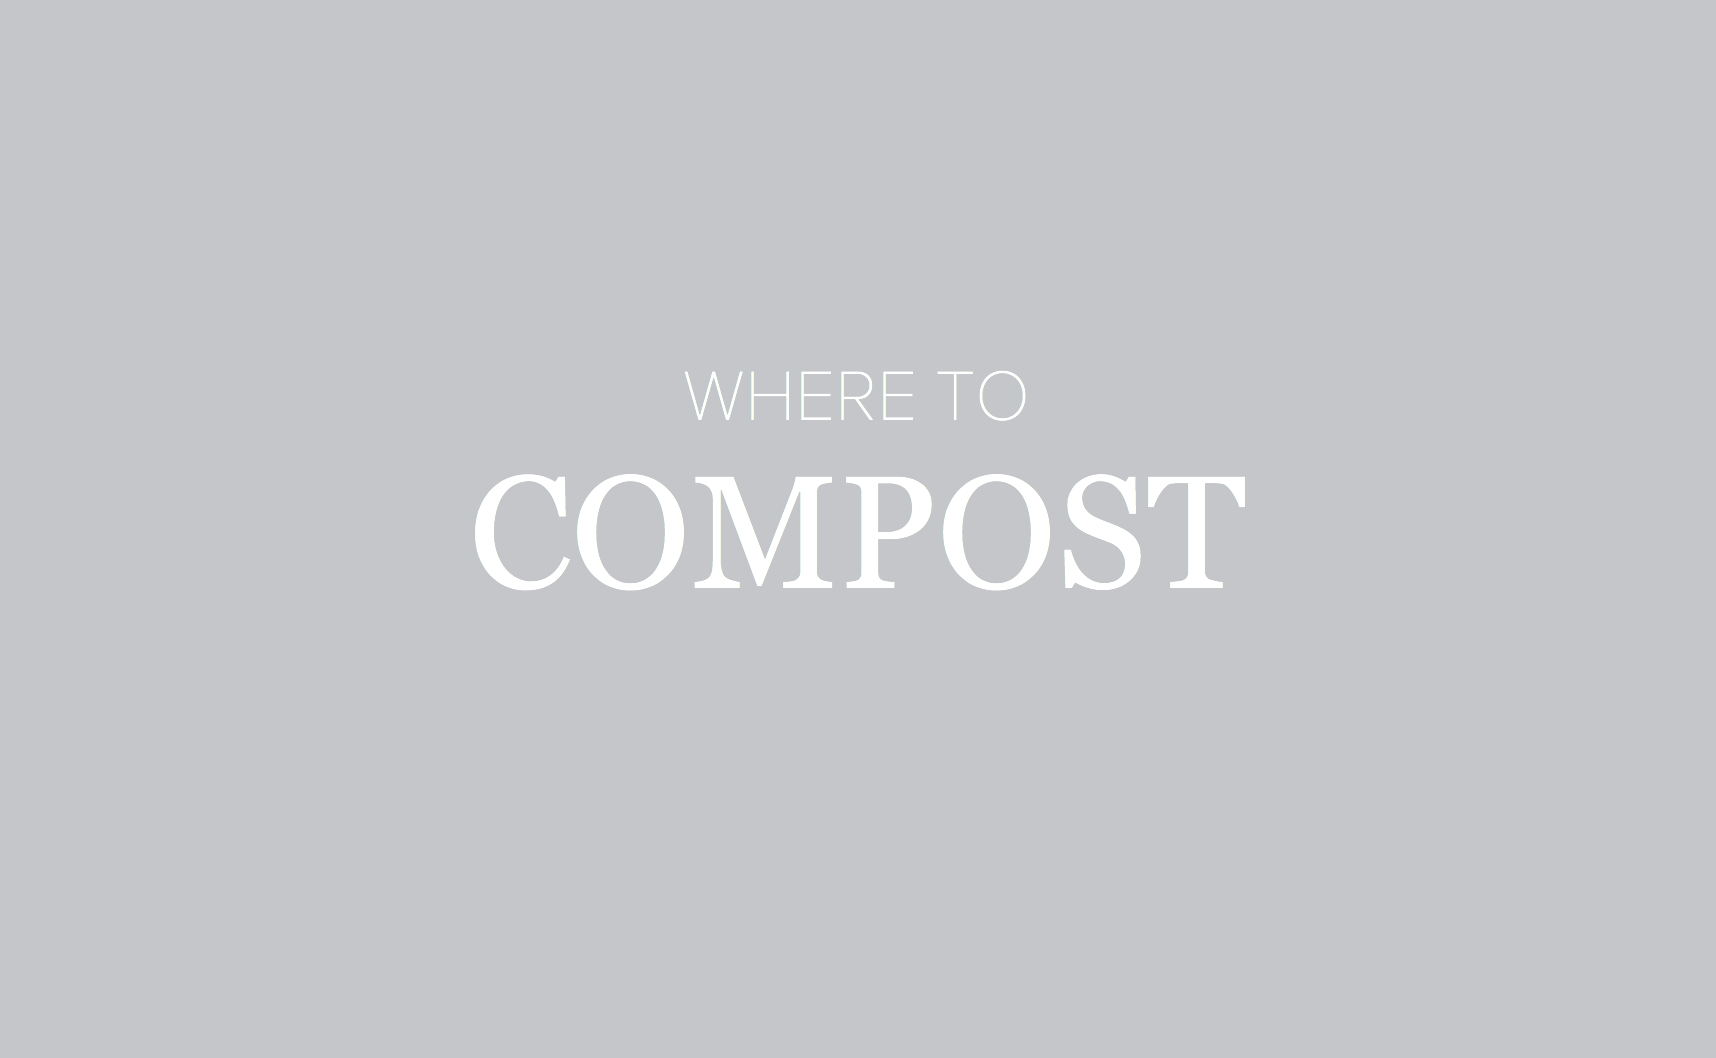 Where to compost in Nevada a state-by-state guide to staying zero waste| Litterless